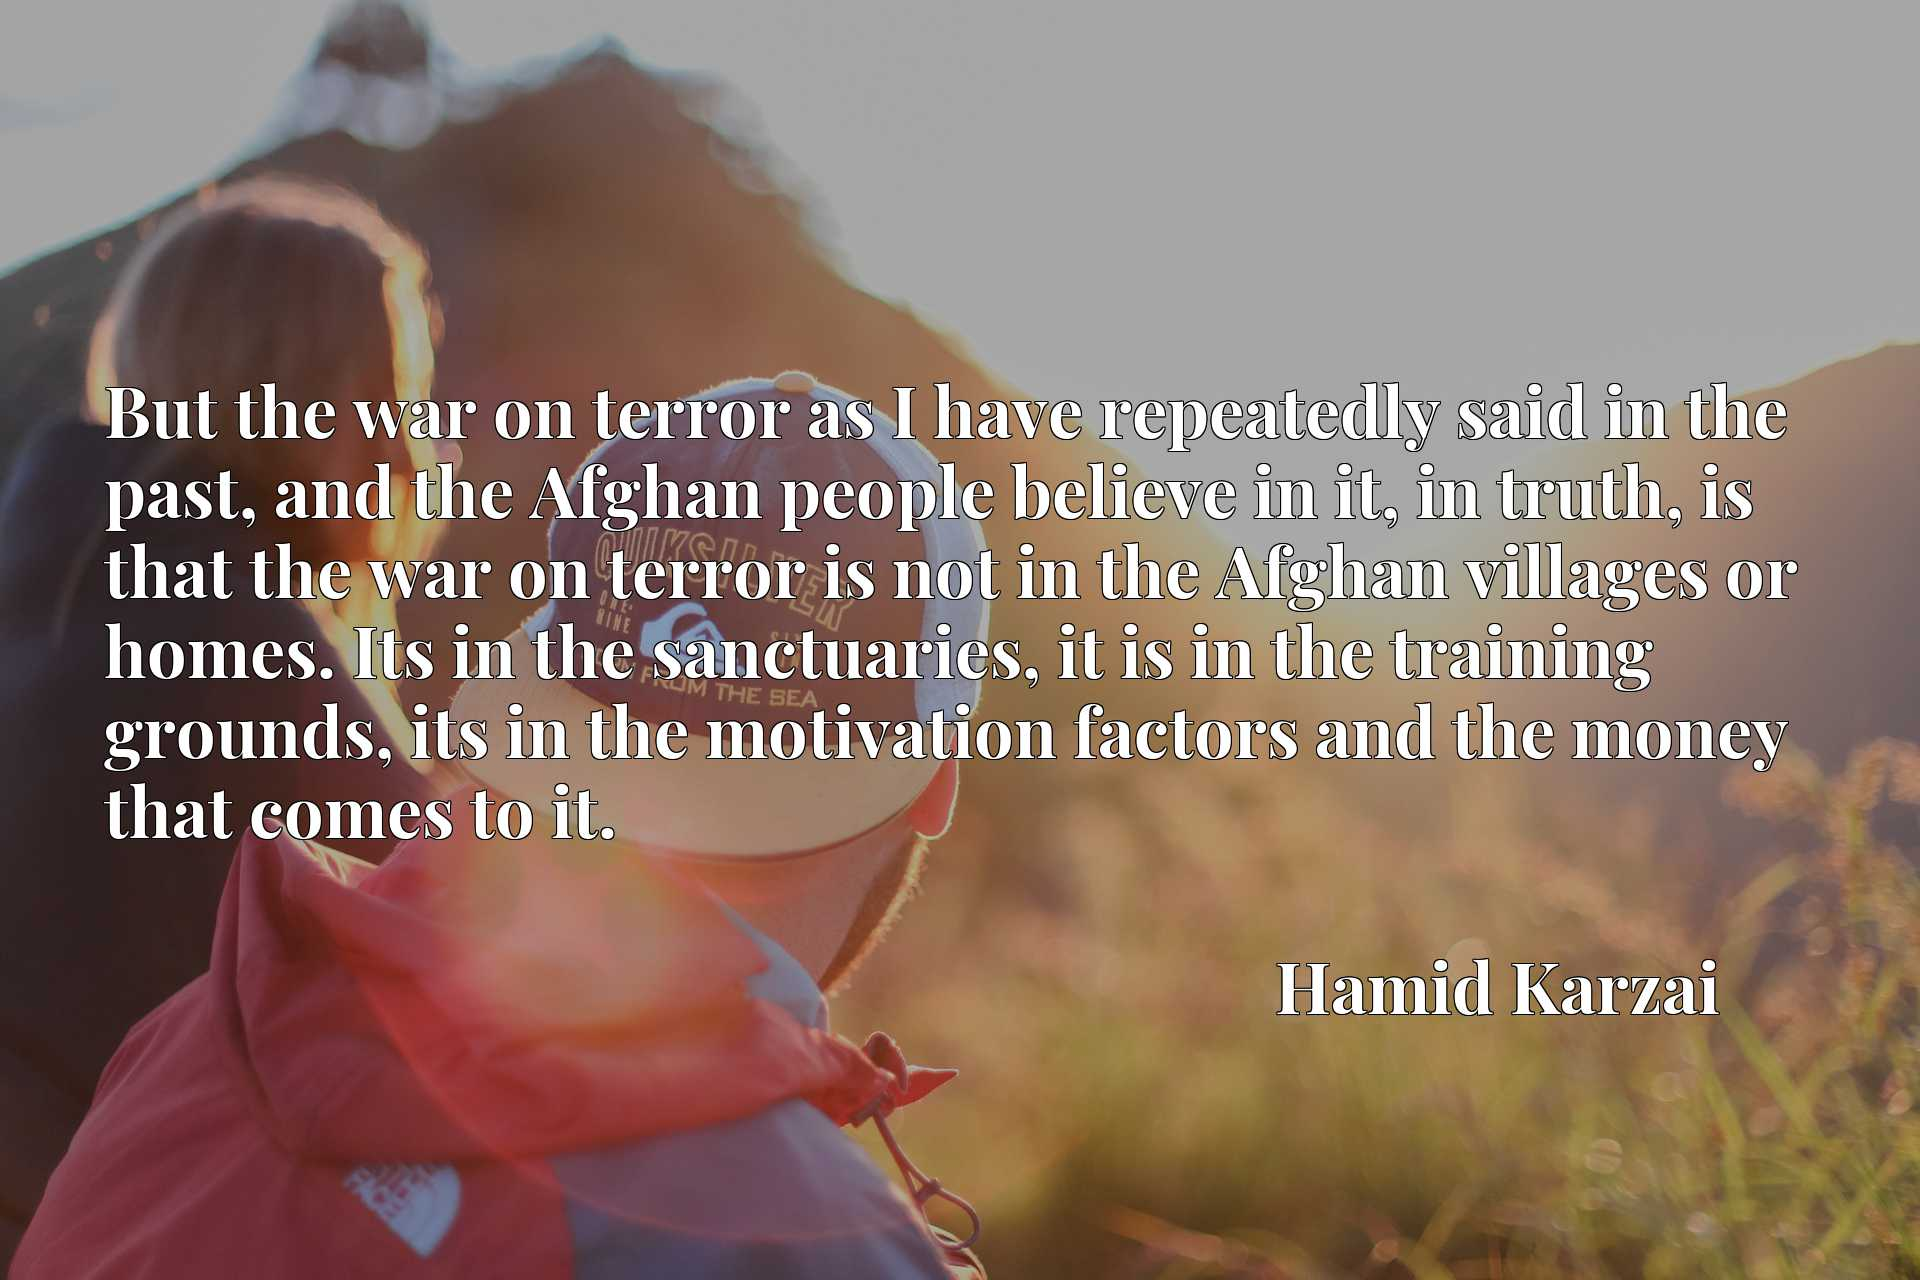 But the war on terror as I have repeatedly said in the past, and the Afghan people believe in it, in truth, is that the war on terror is not in the Afghan villages or homes. Its in the sanctuaries, it is in the training grounds, its in the motivation factors and the money that comes to it.